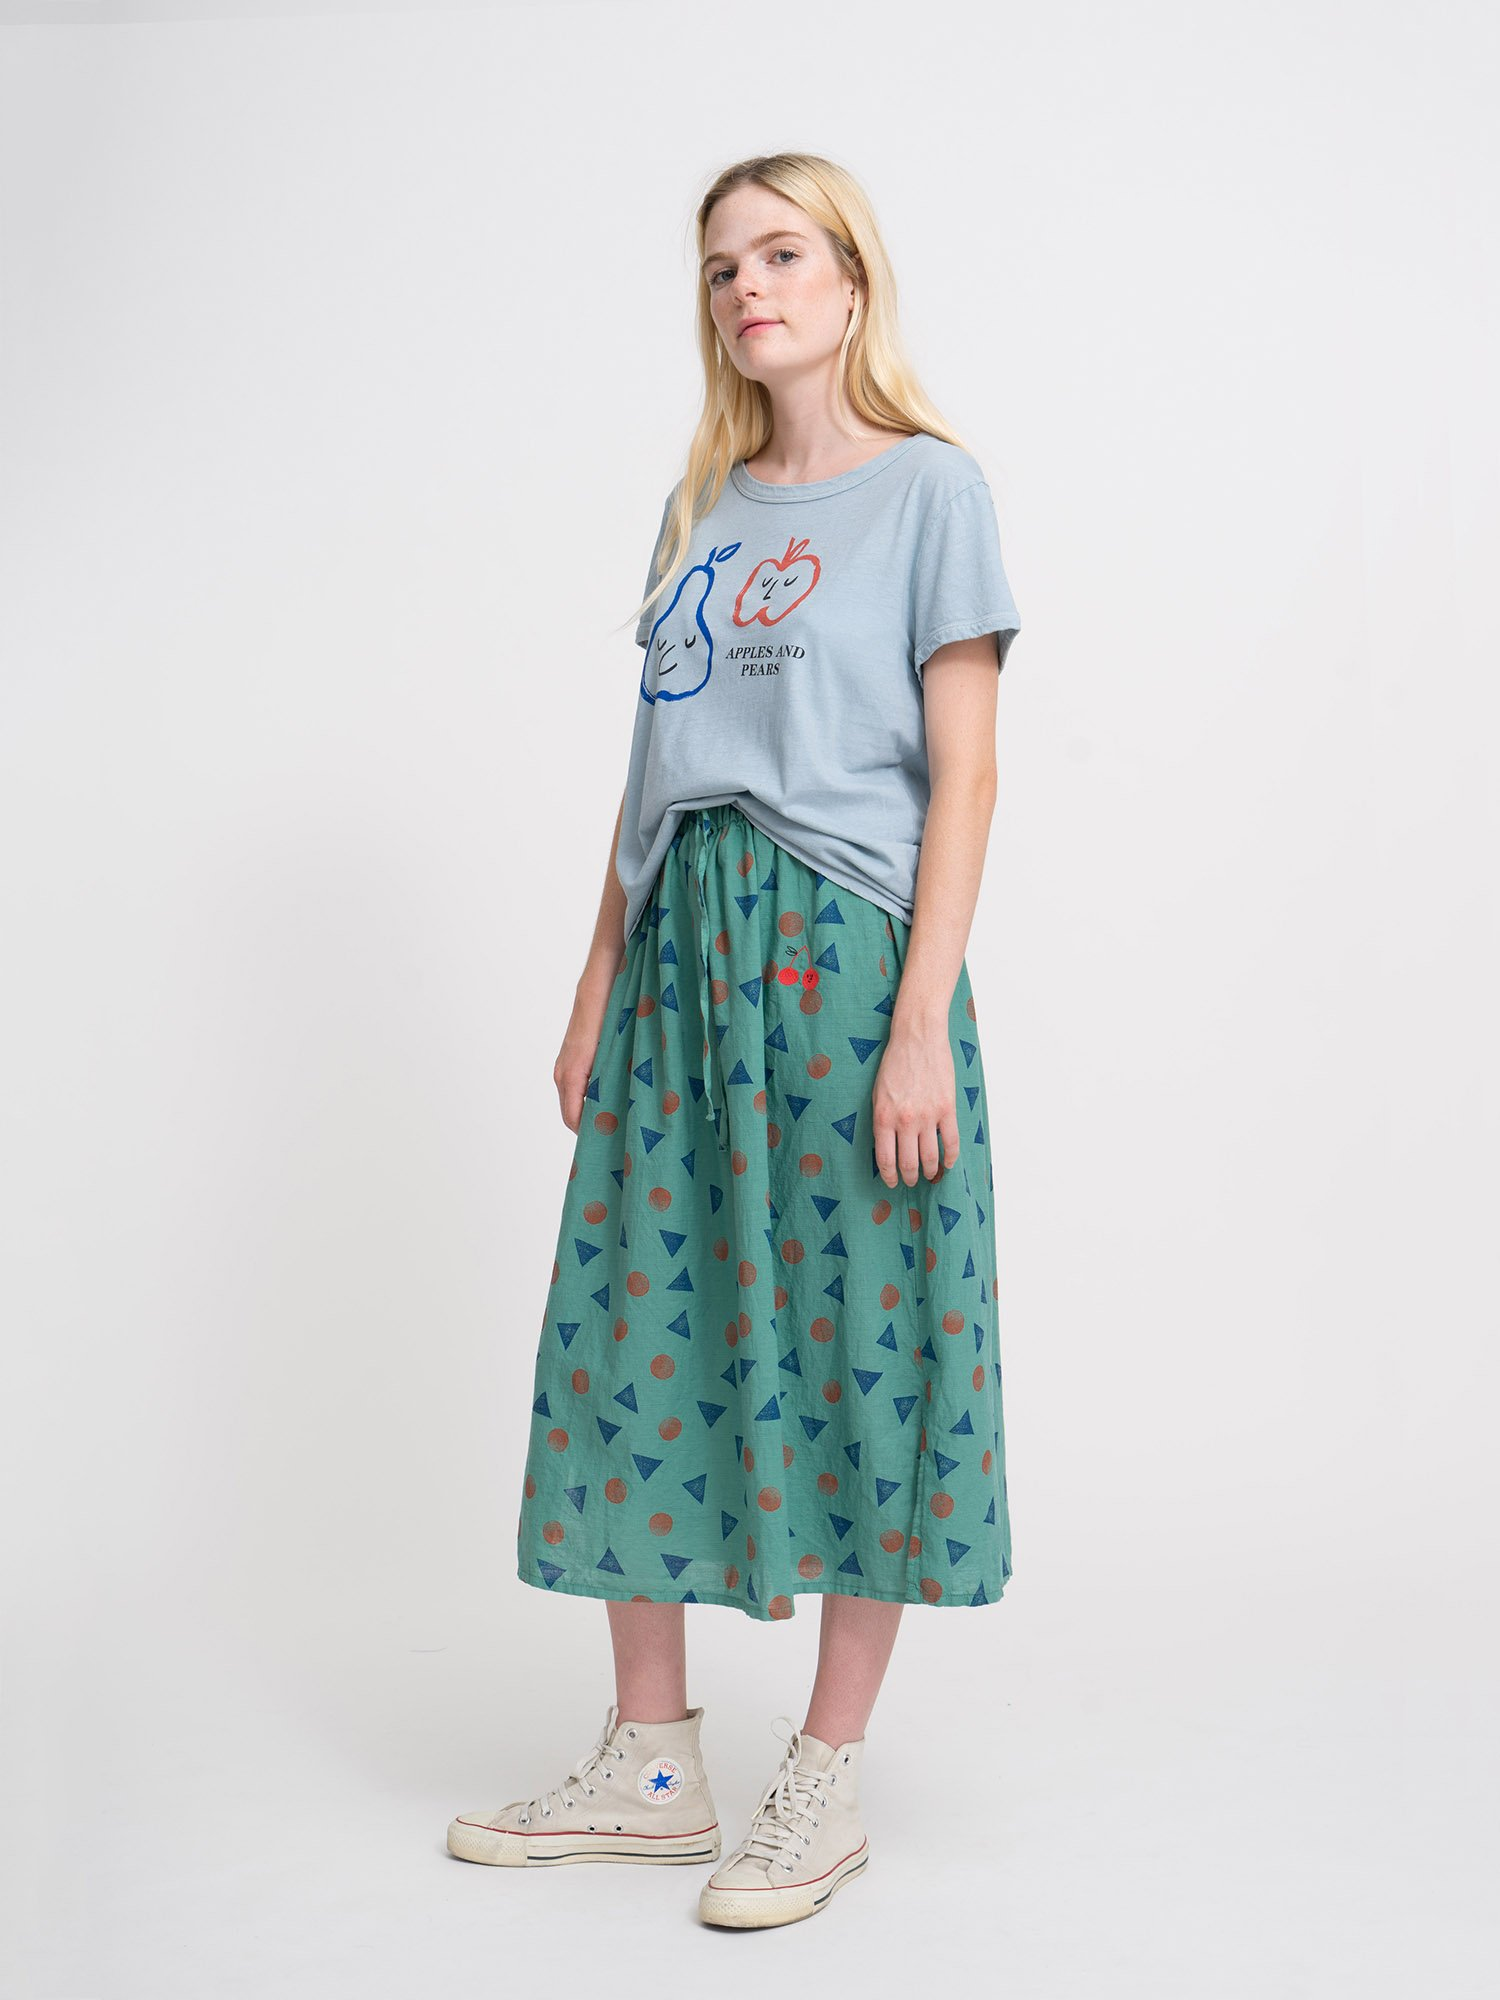 Apples And Pears Short Sleeve T-Shirt